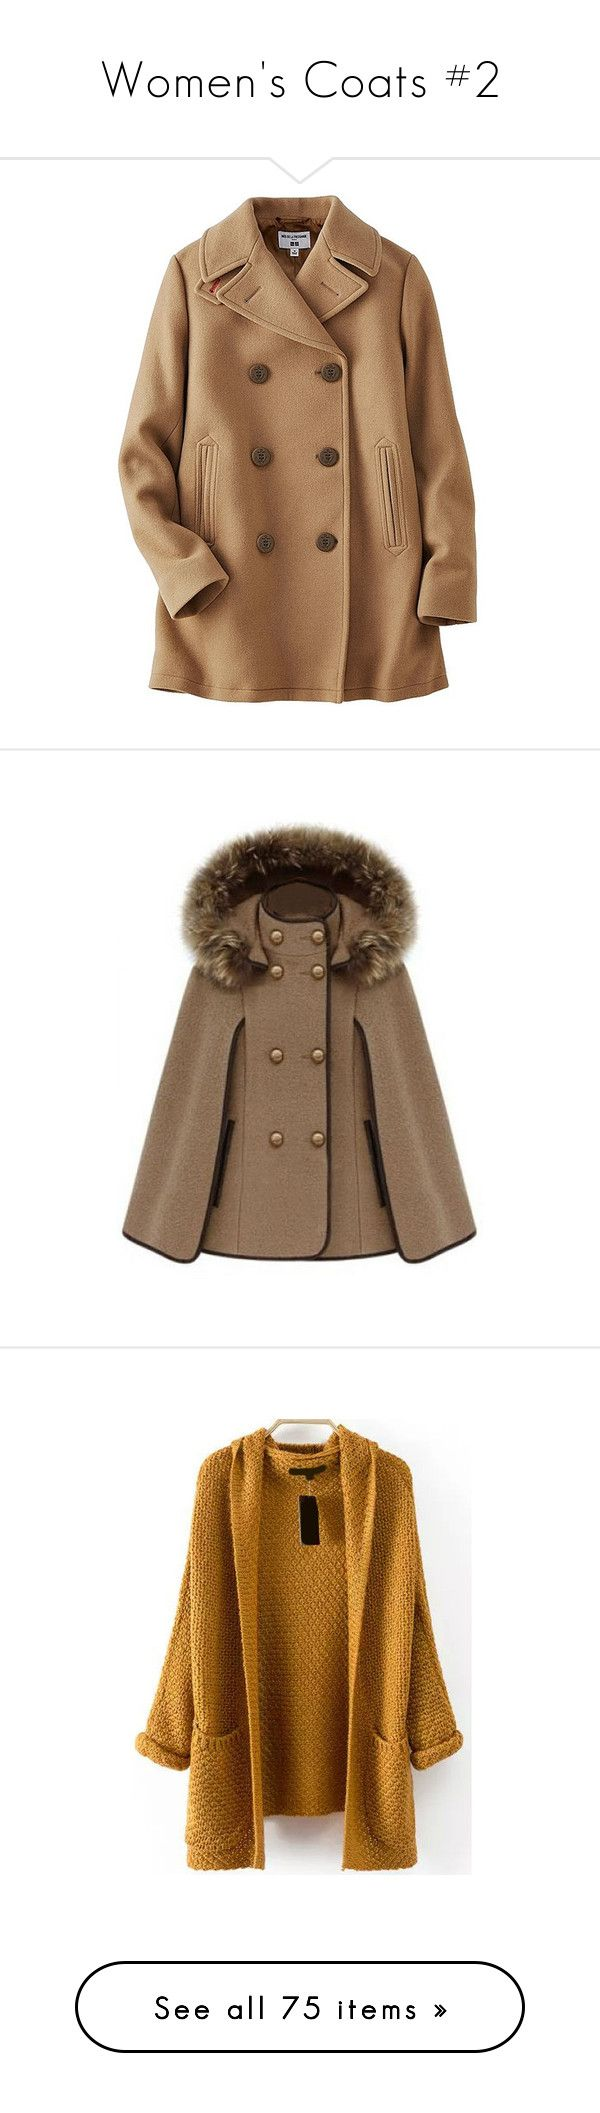 """""""Women's Coats #2"""" by nathalialopes-1 ❤ liked on Polyvore featuring outerwear, coats, jackets, coats & jackets, brown coat, brown peacoat, wool blend coat, brown pea coat, peacoat coat and cape"""